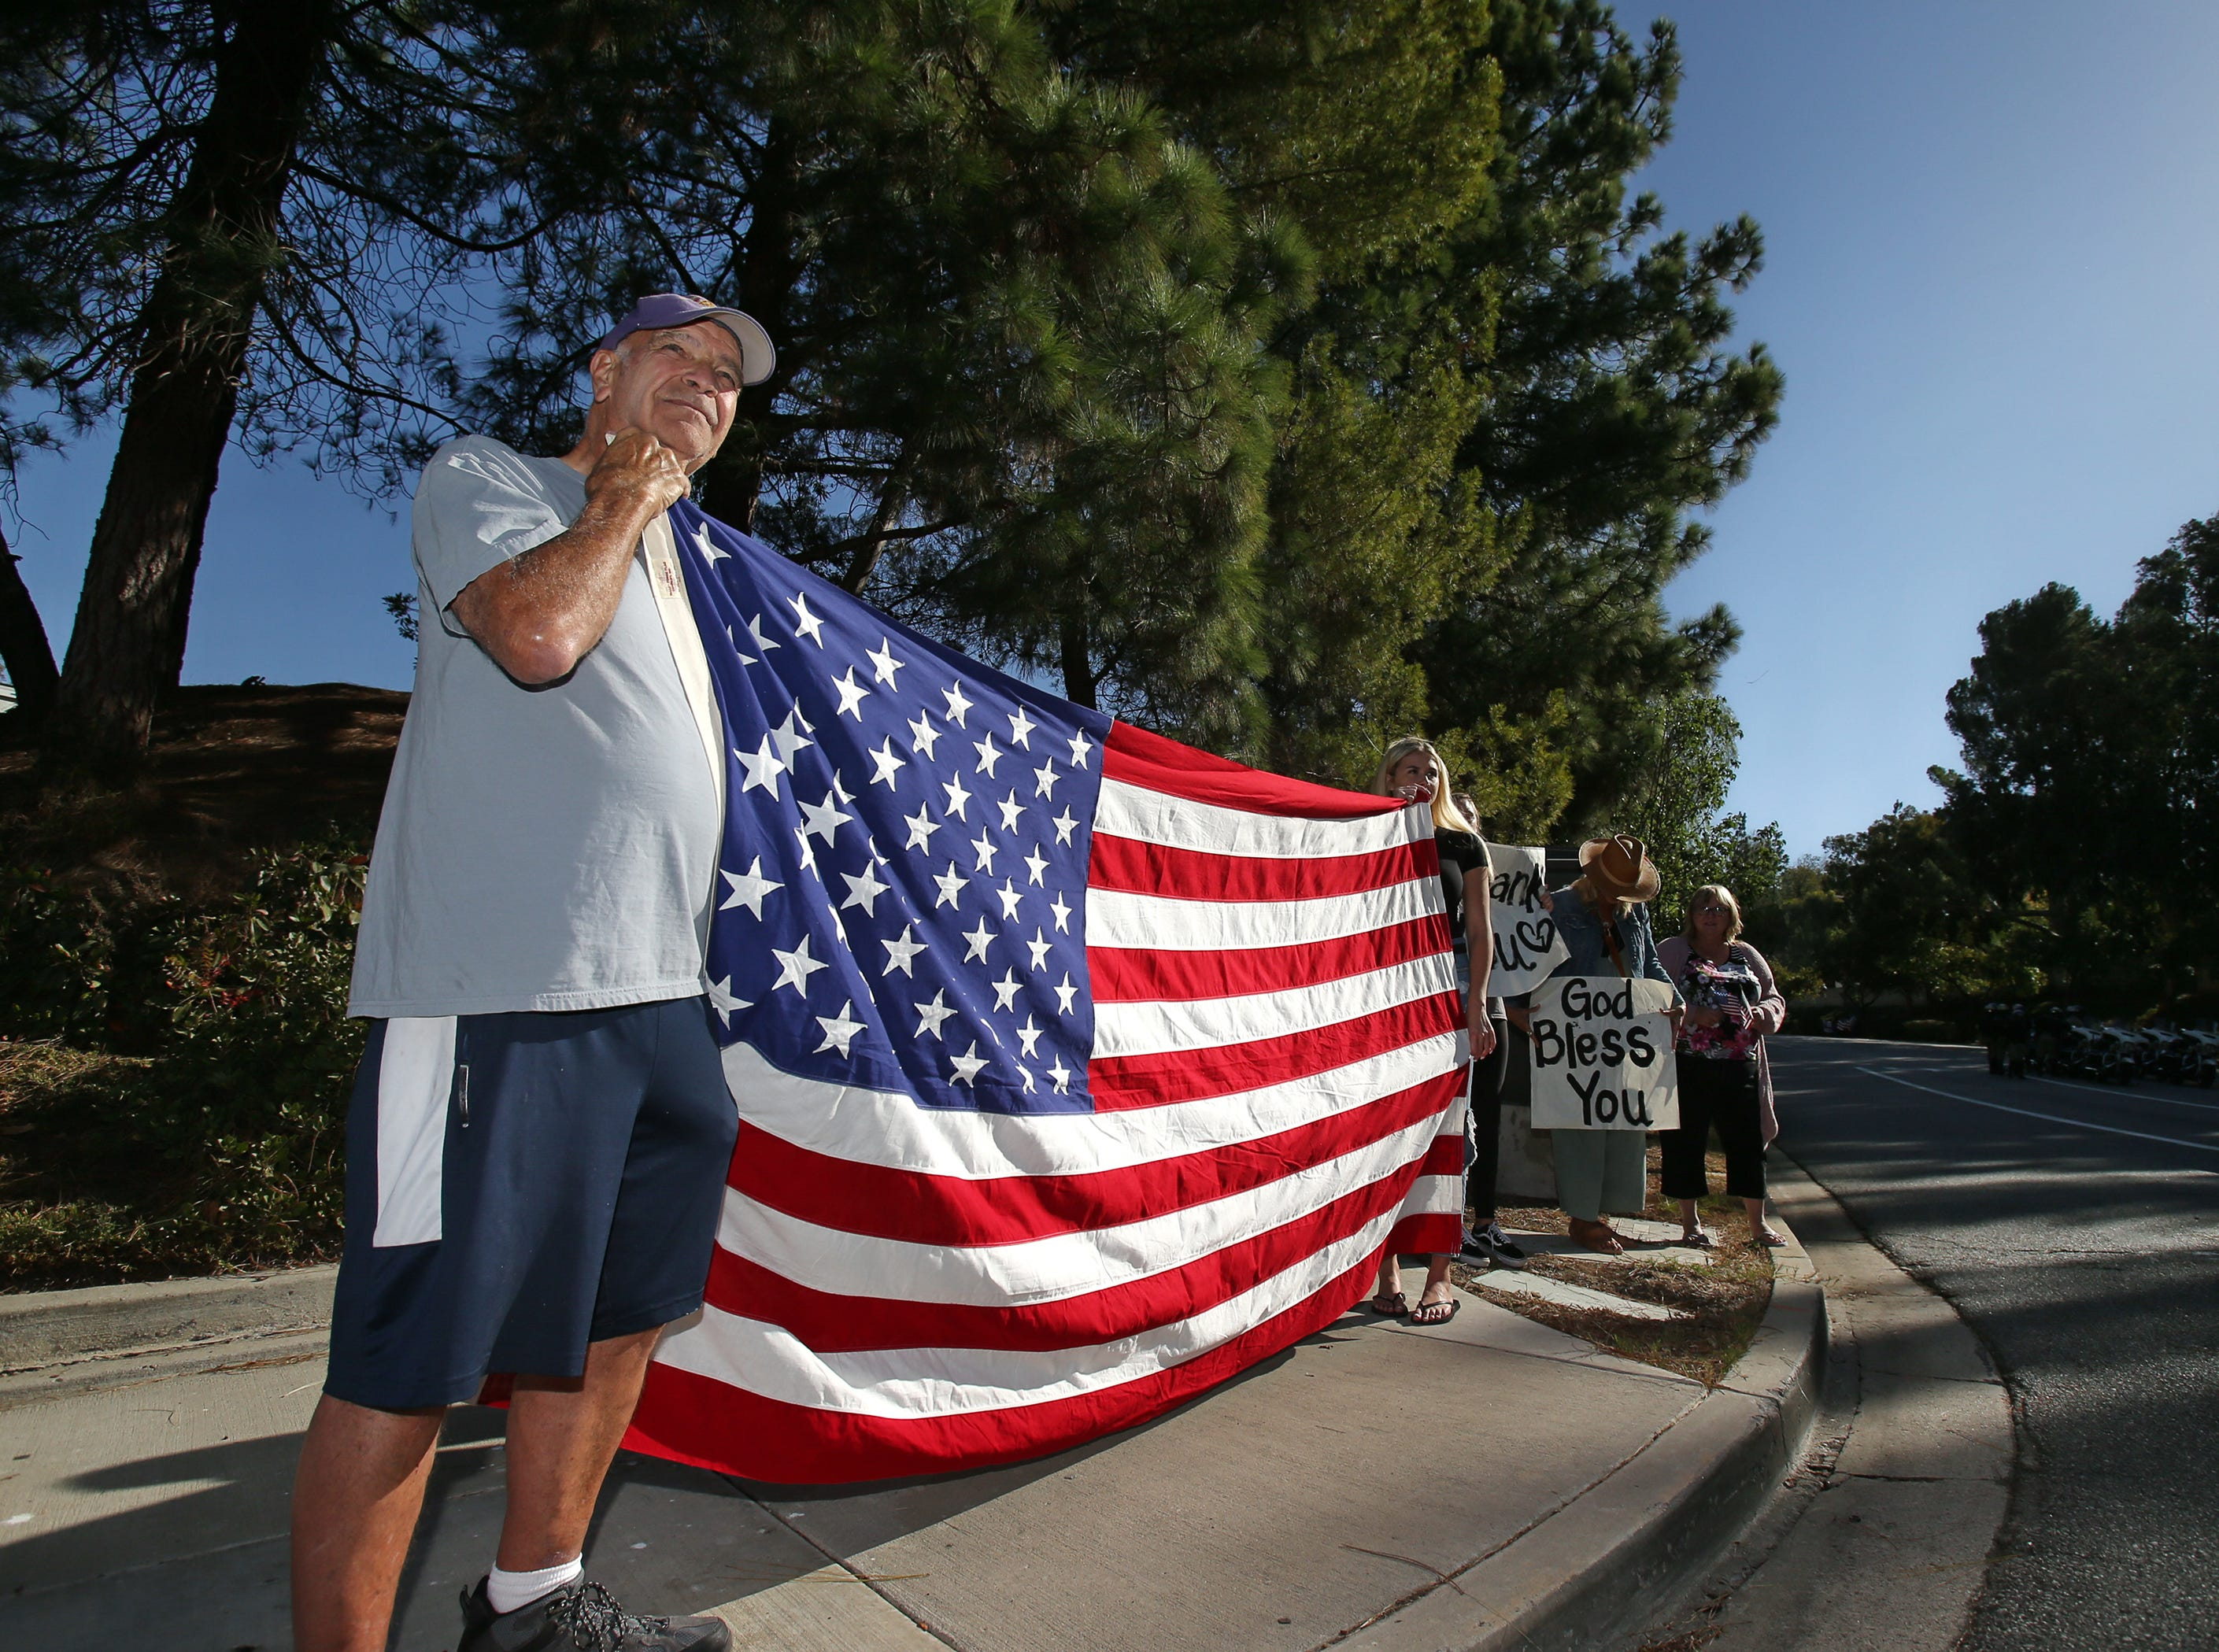 Richard Cook and his granddaughter Chloe Daland hold up an American flag as they pay their respects to Ventura County Sheriff Sgt. Ron Helus before his body leaves Los Robles Hospital on Thursday. Helus was killed inside the Borderline Bar and Grill in Thousand Oaks late Wednesday, when 13 people died including the gunman in a mass shooting.